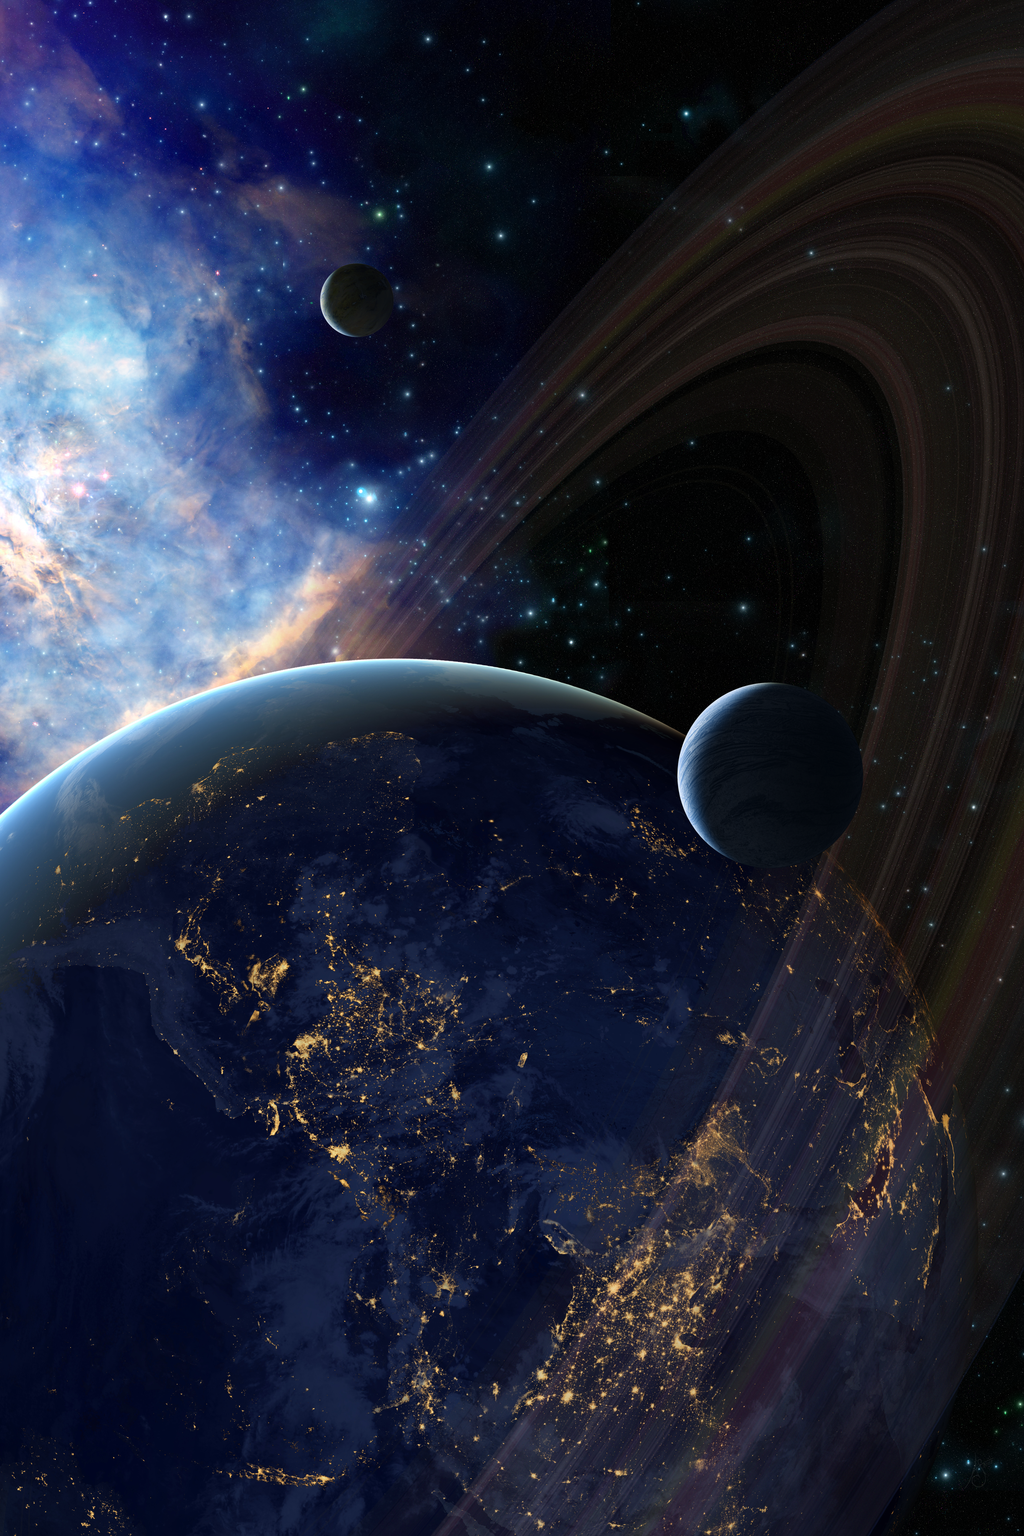 The Similarities of the Planets and Other Celestial Objects